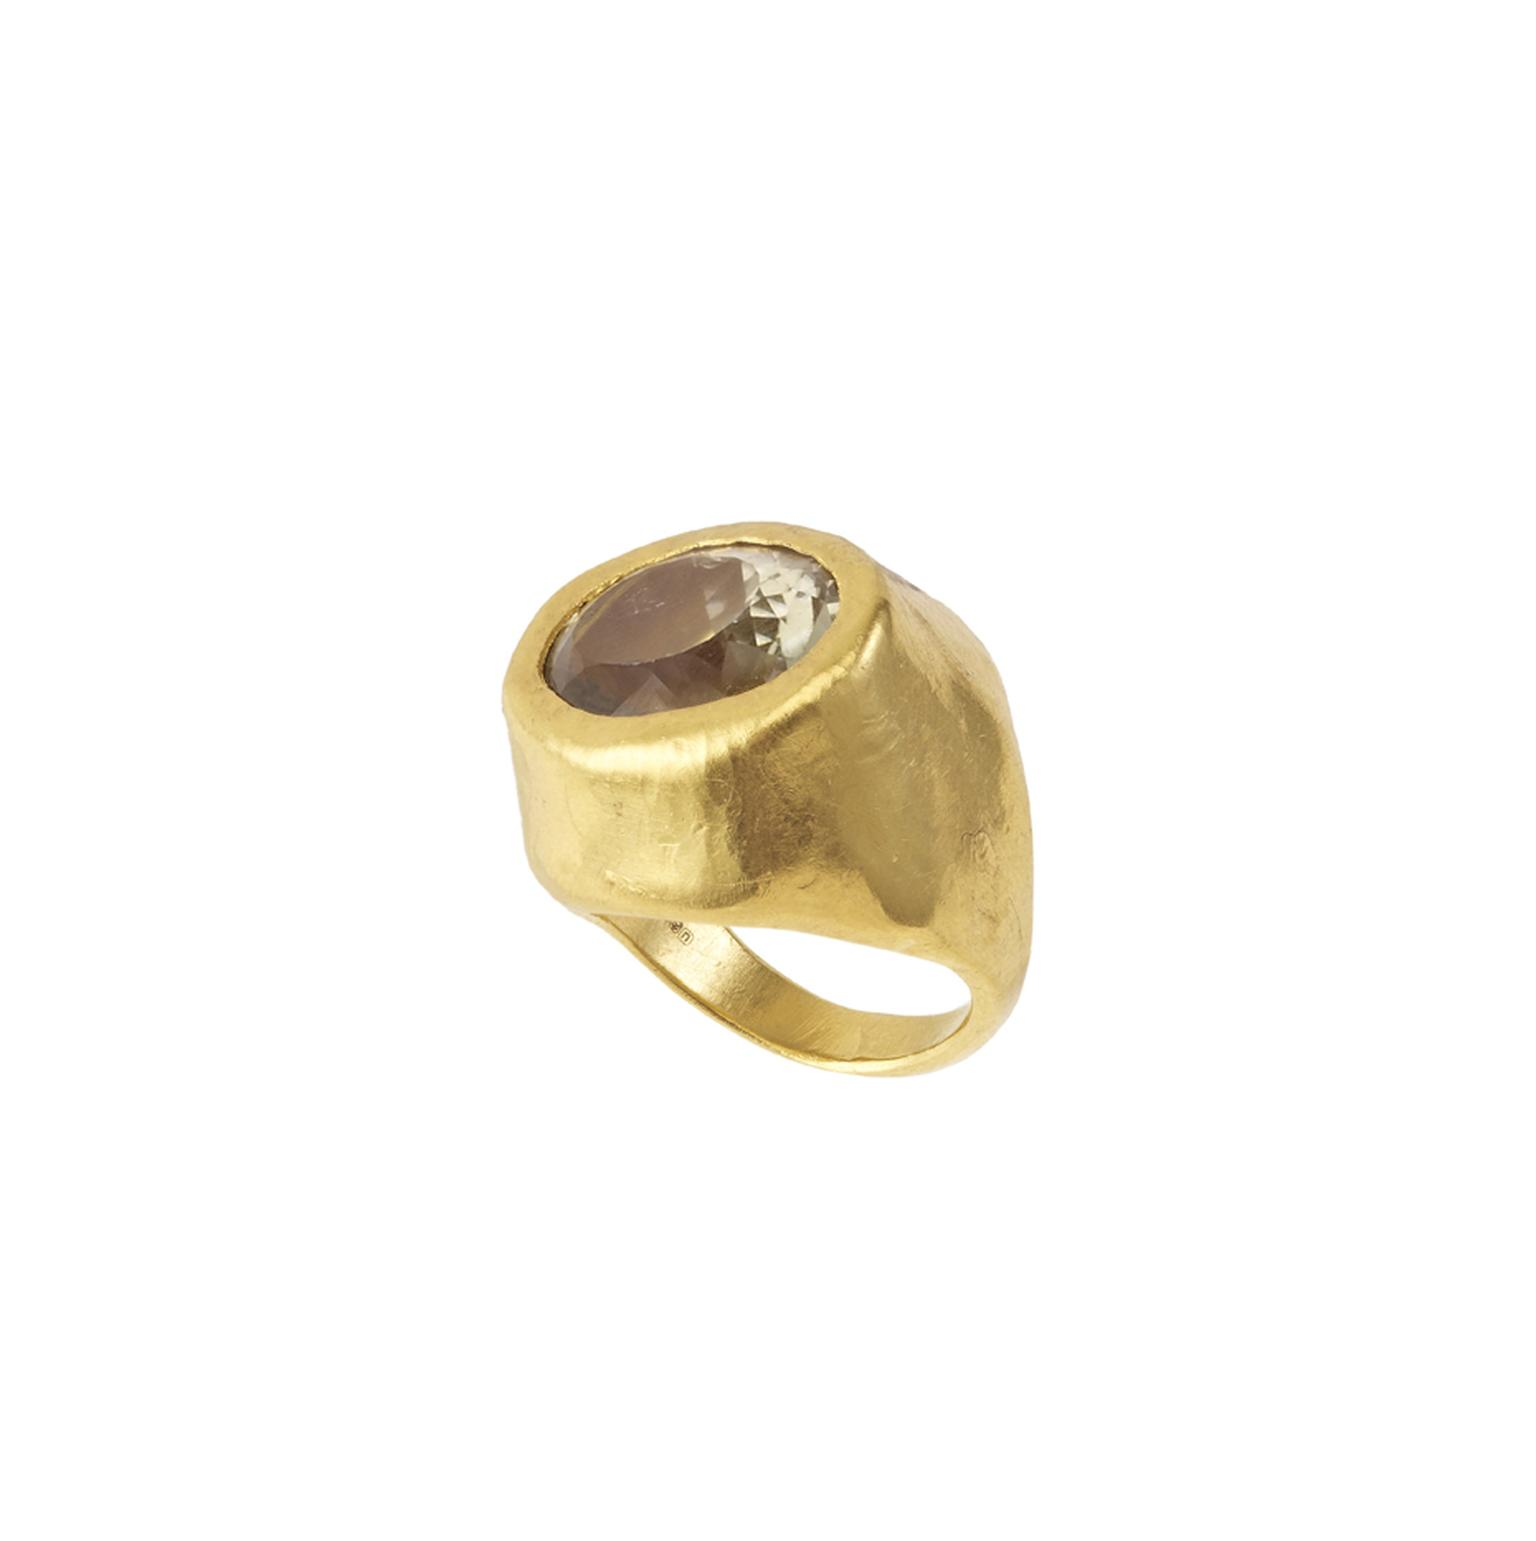 Pippa Small Tibetan ring featuring a topaz (15ct) surrounded by brushed gold.